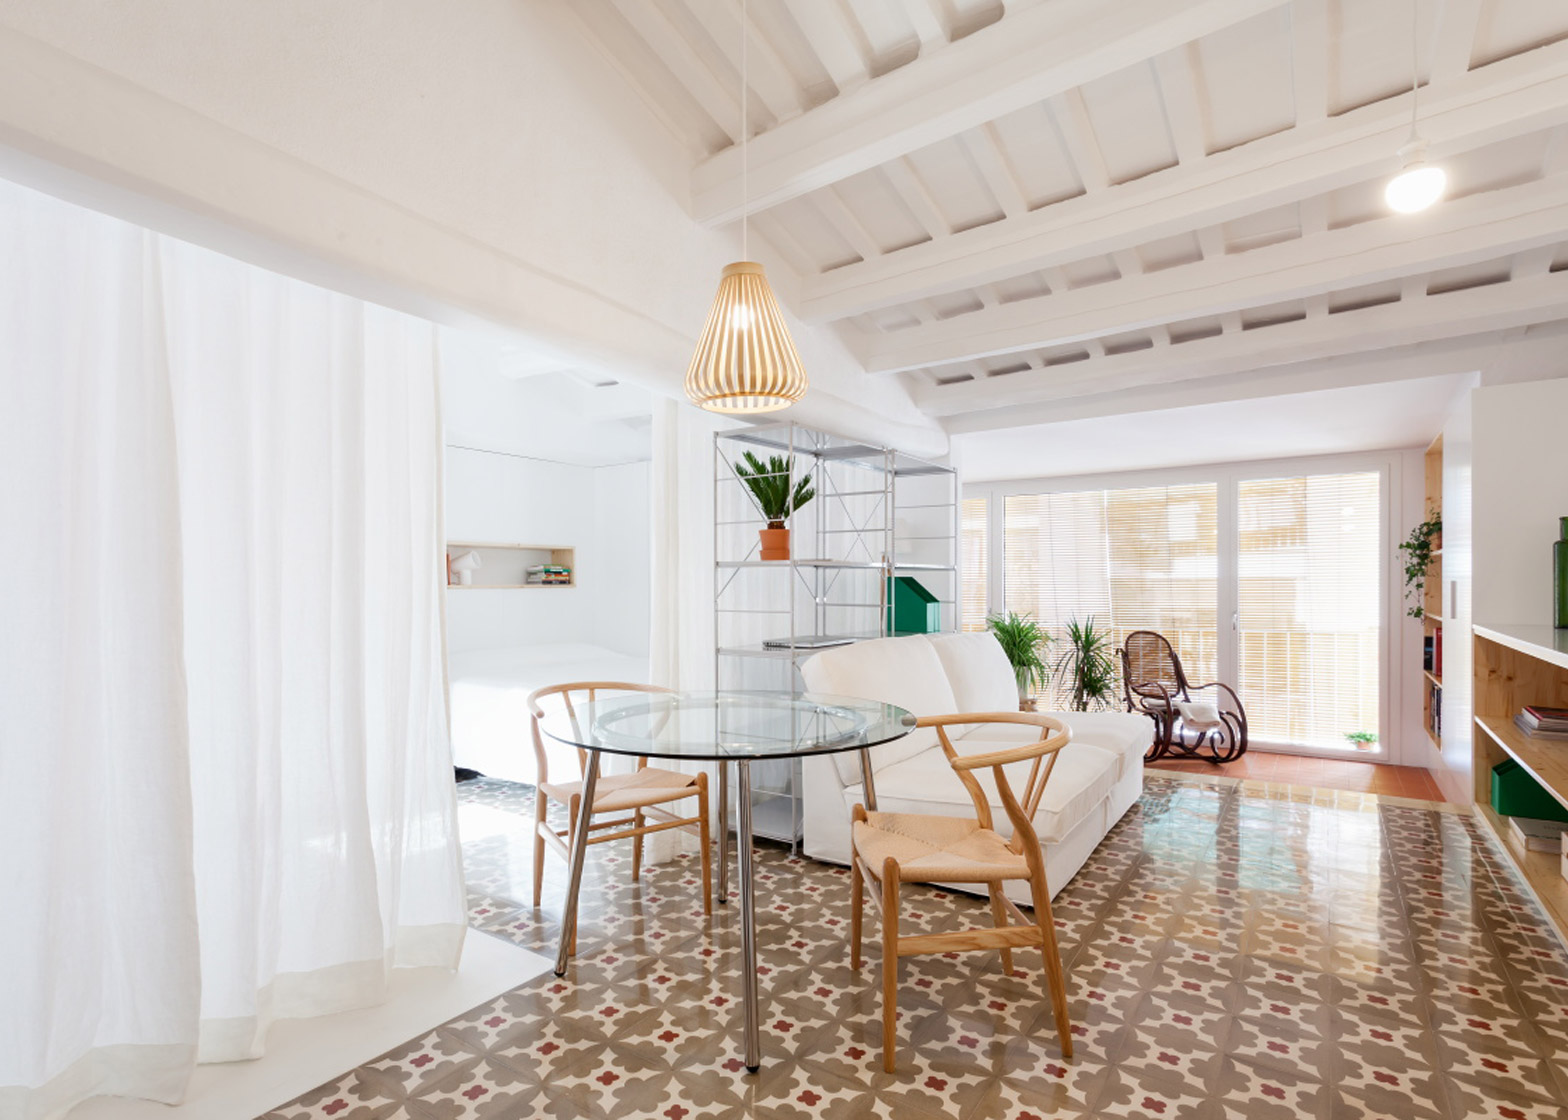 High-ceilinged with exposed beams and white walls, the flat features an open plan with traditional tiling and curtained zones.